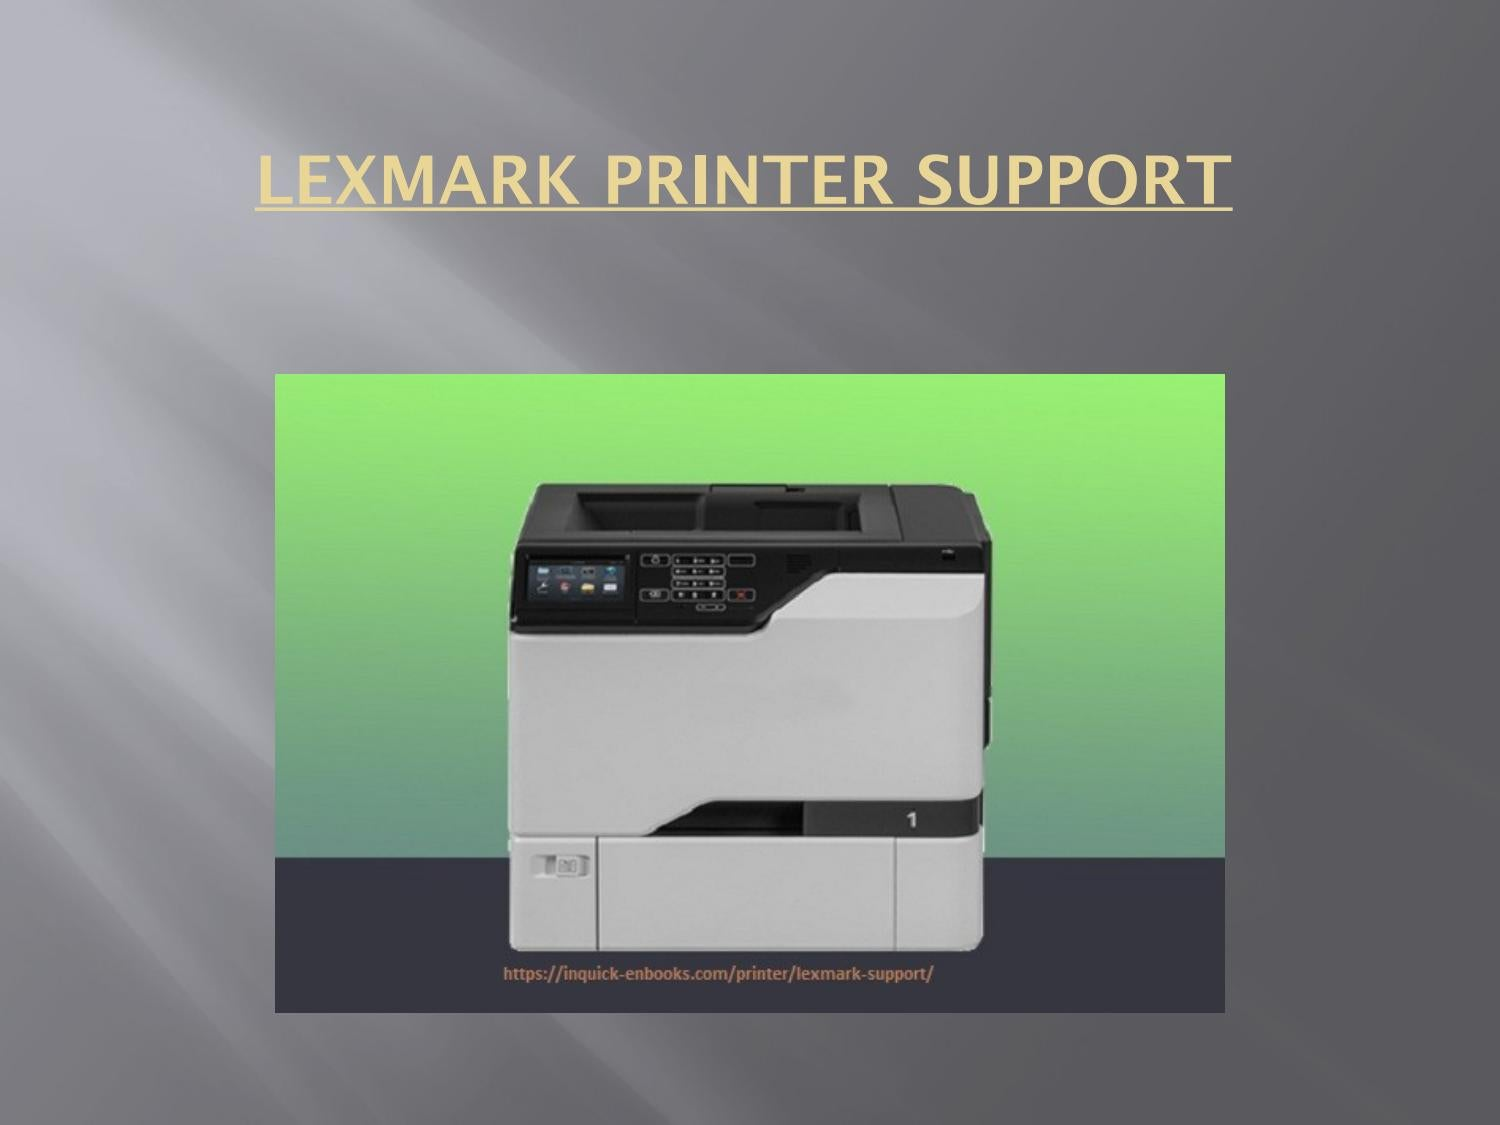 Lexmark Printer Support | Customer Service Toll-free Number